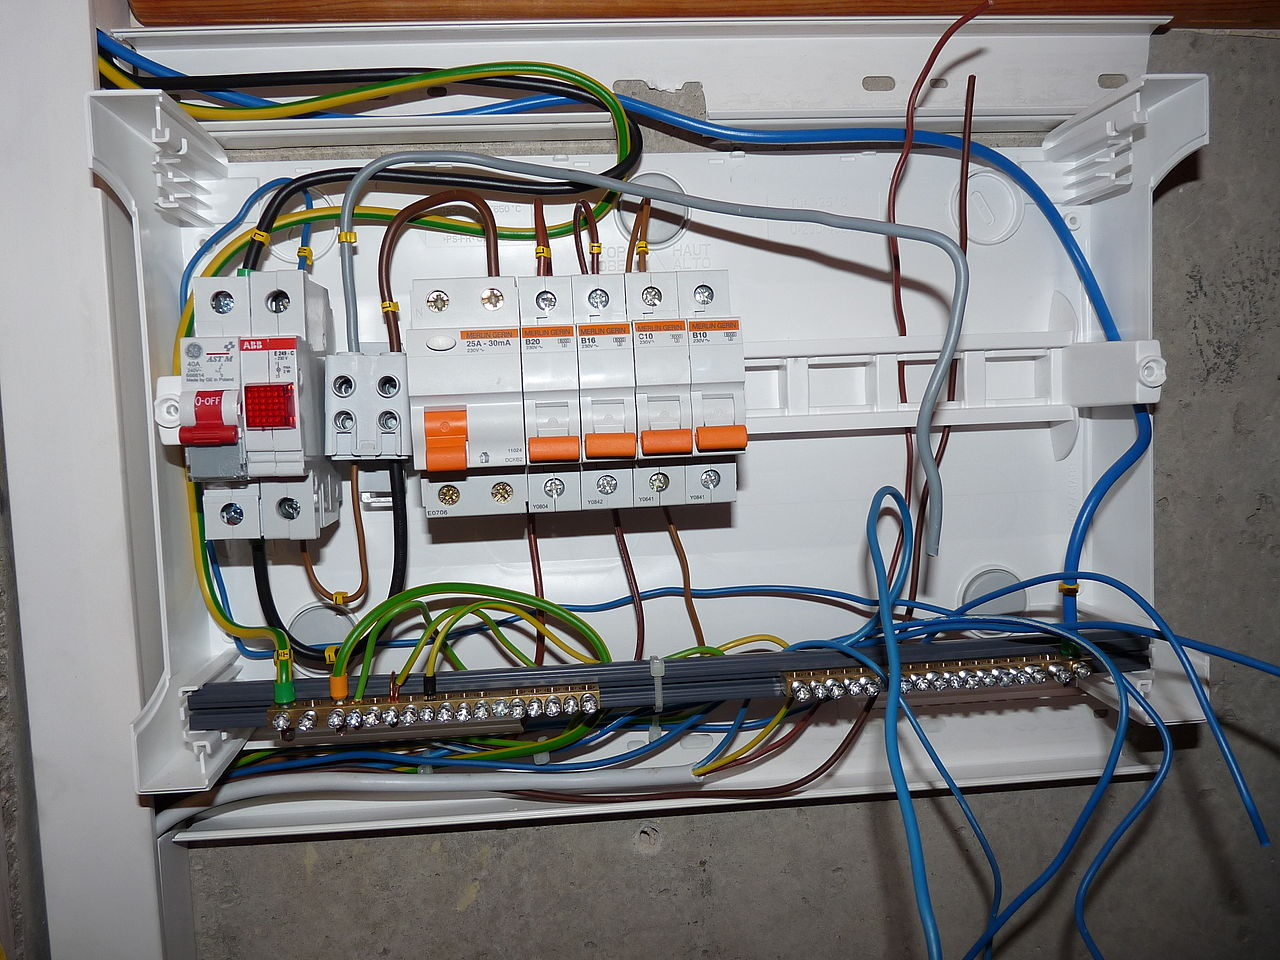 hight resolution of file linnam e 37 fuse box wiring process jpg